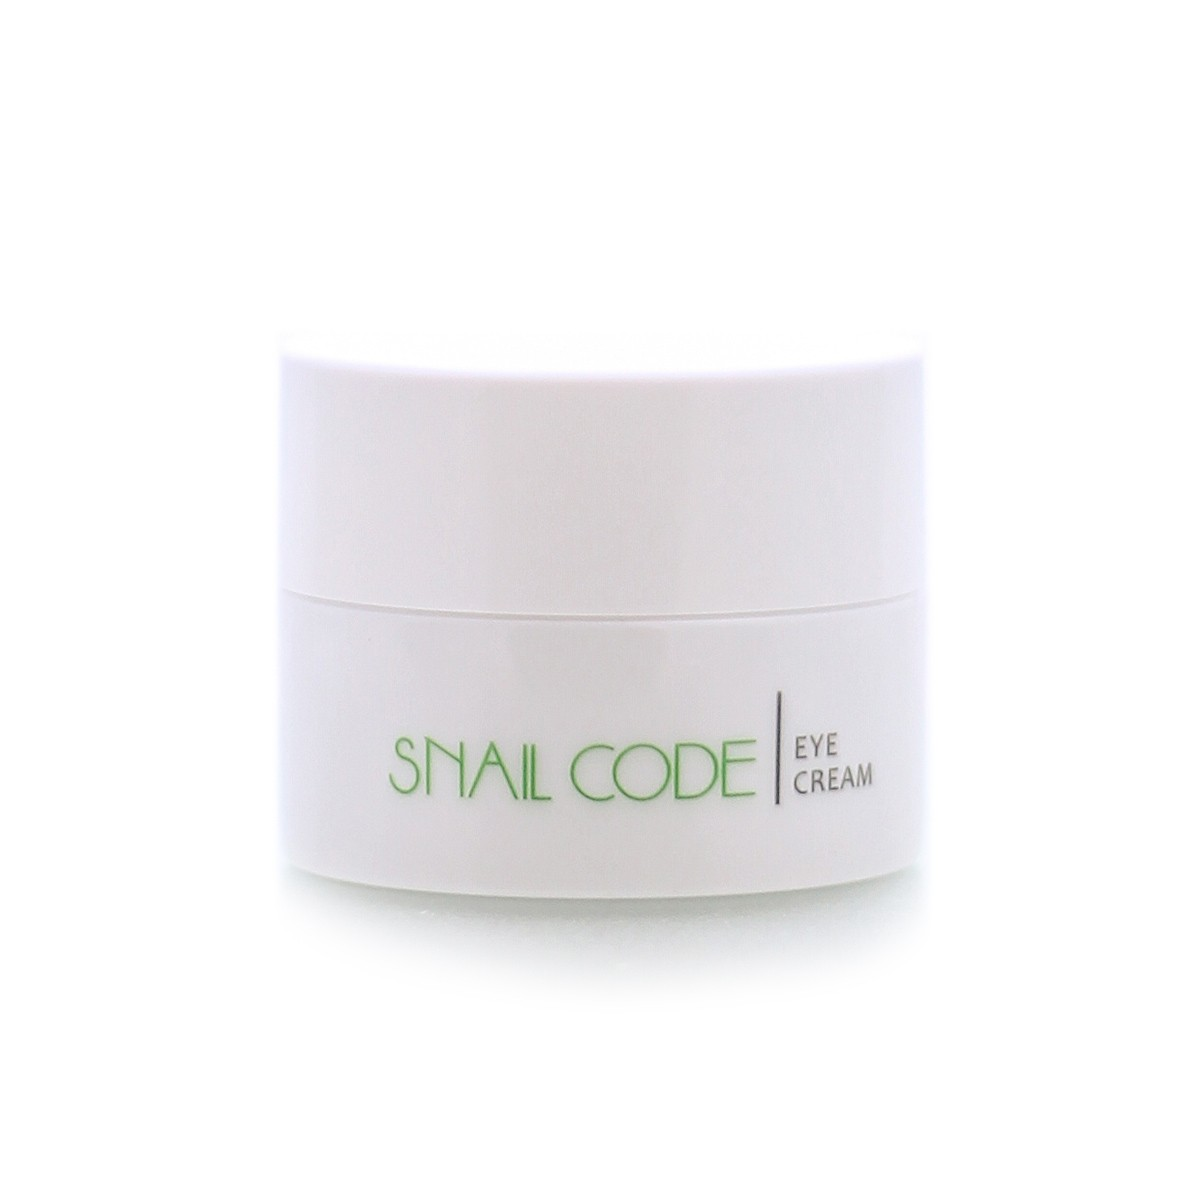 Regenerating eye cream with a 100% purified snail extract Revive